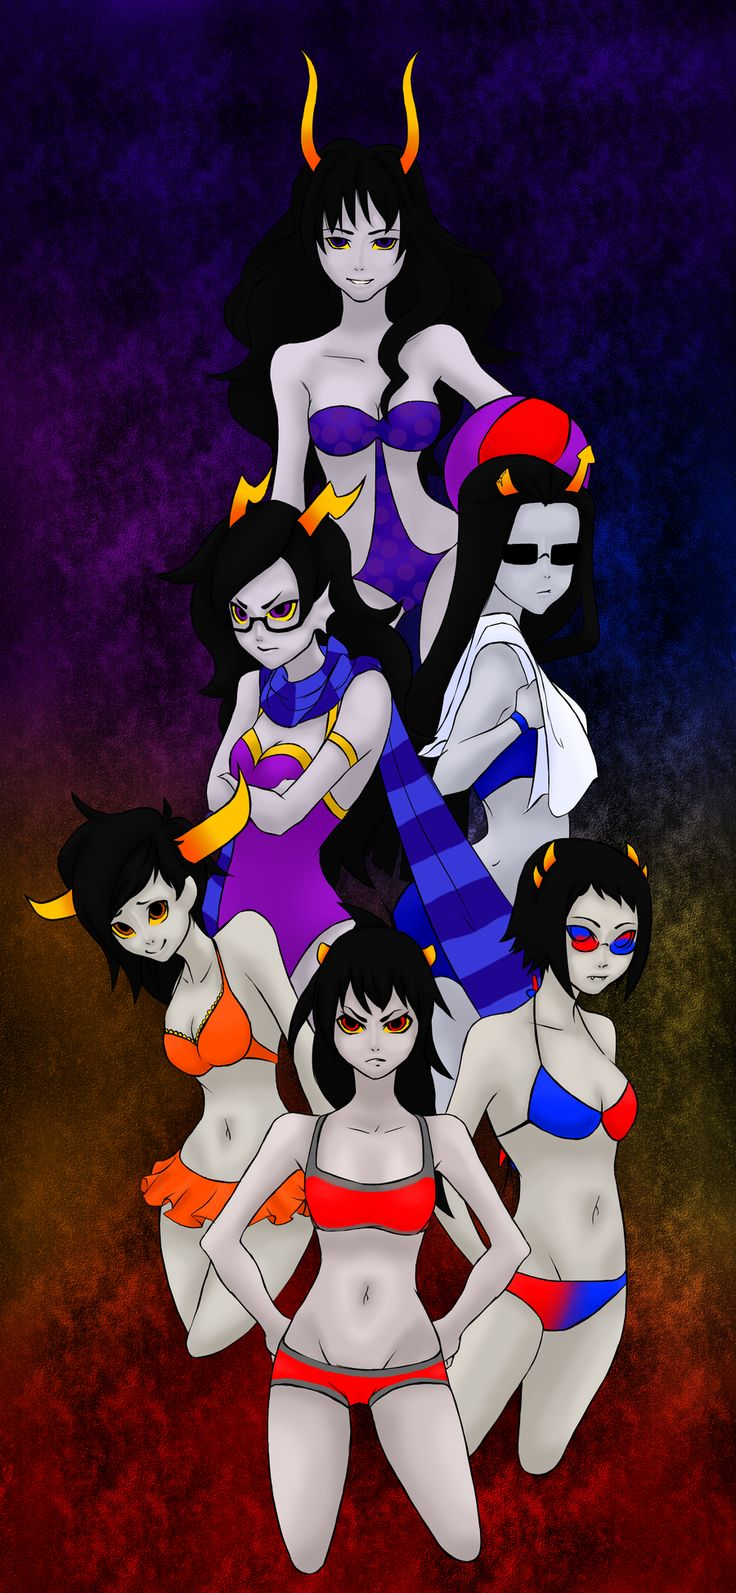 153 best Homestuck images on Pinterest | Aradia, Cosplay ...